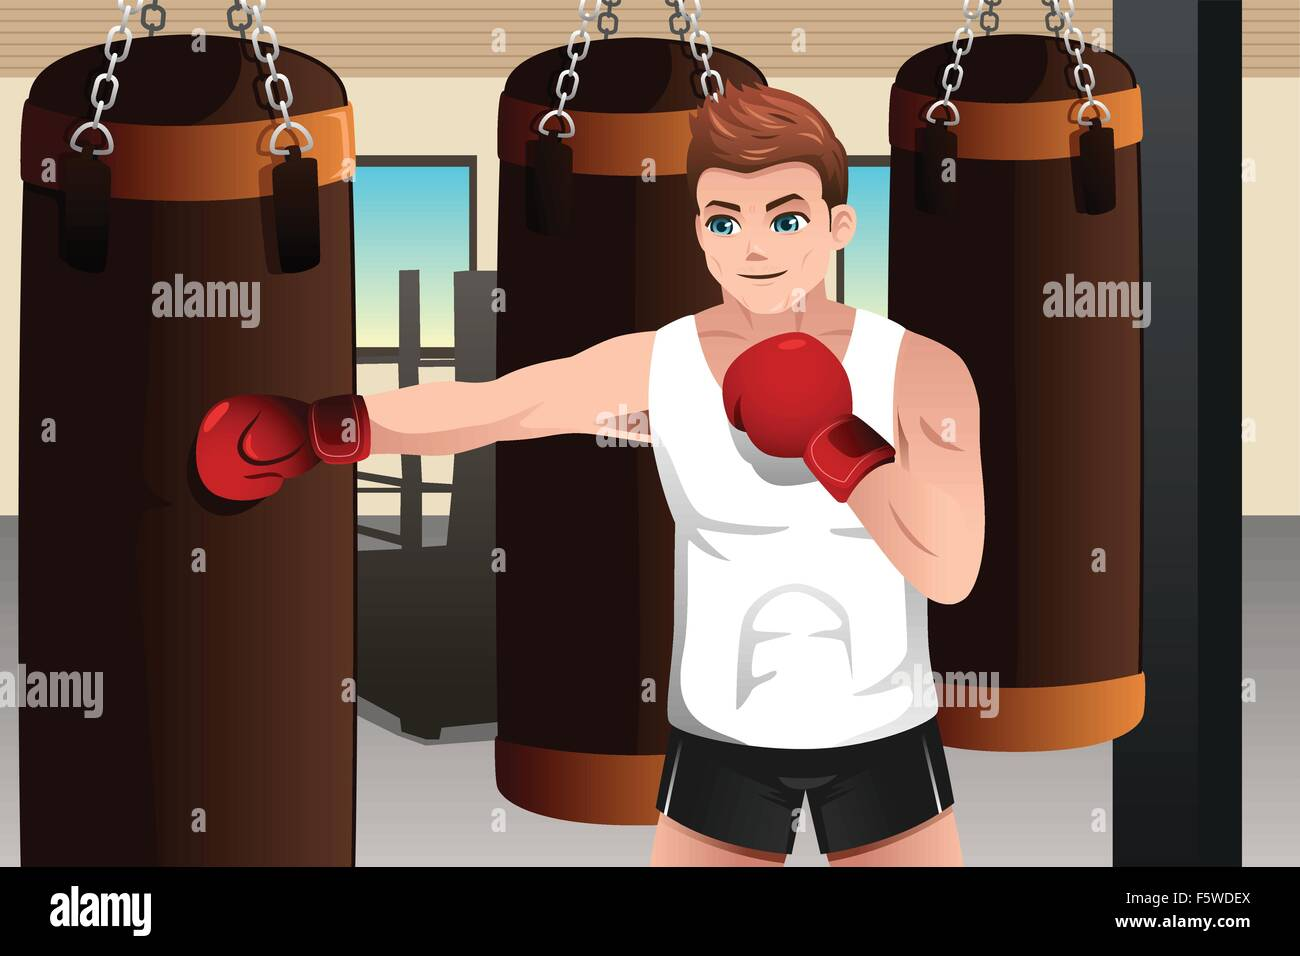 A vector illustration of boxer training on a punching bag in the gym - Stock Vector